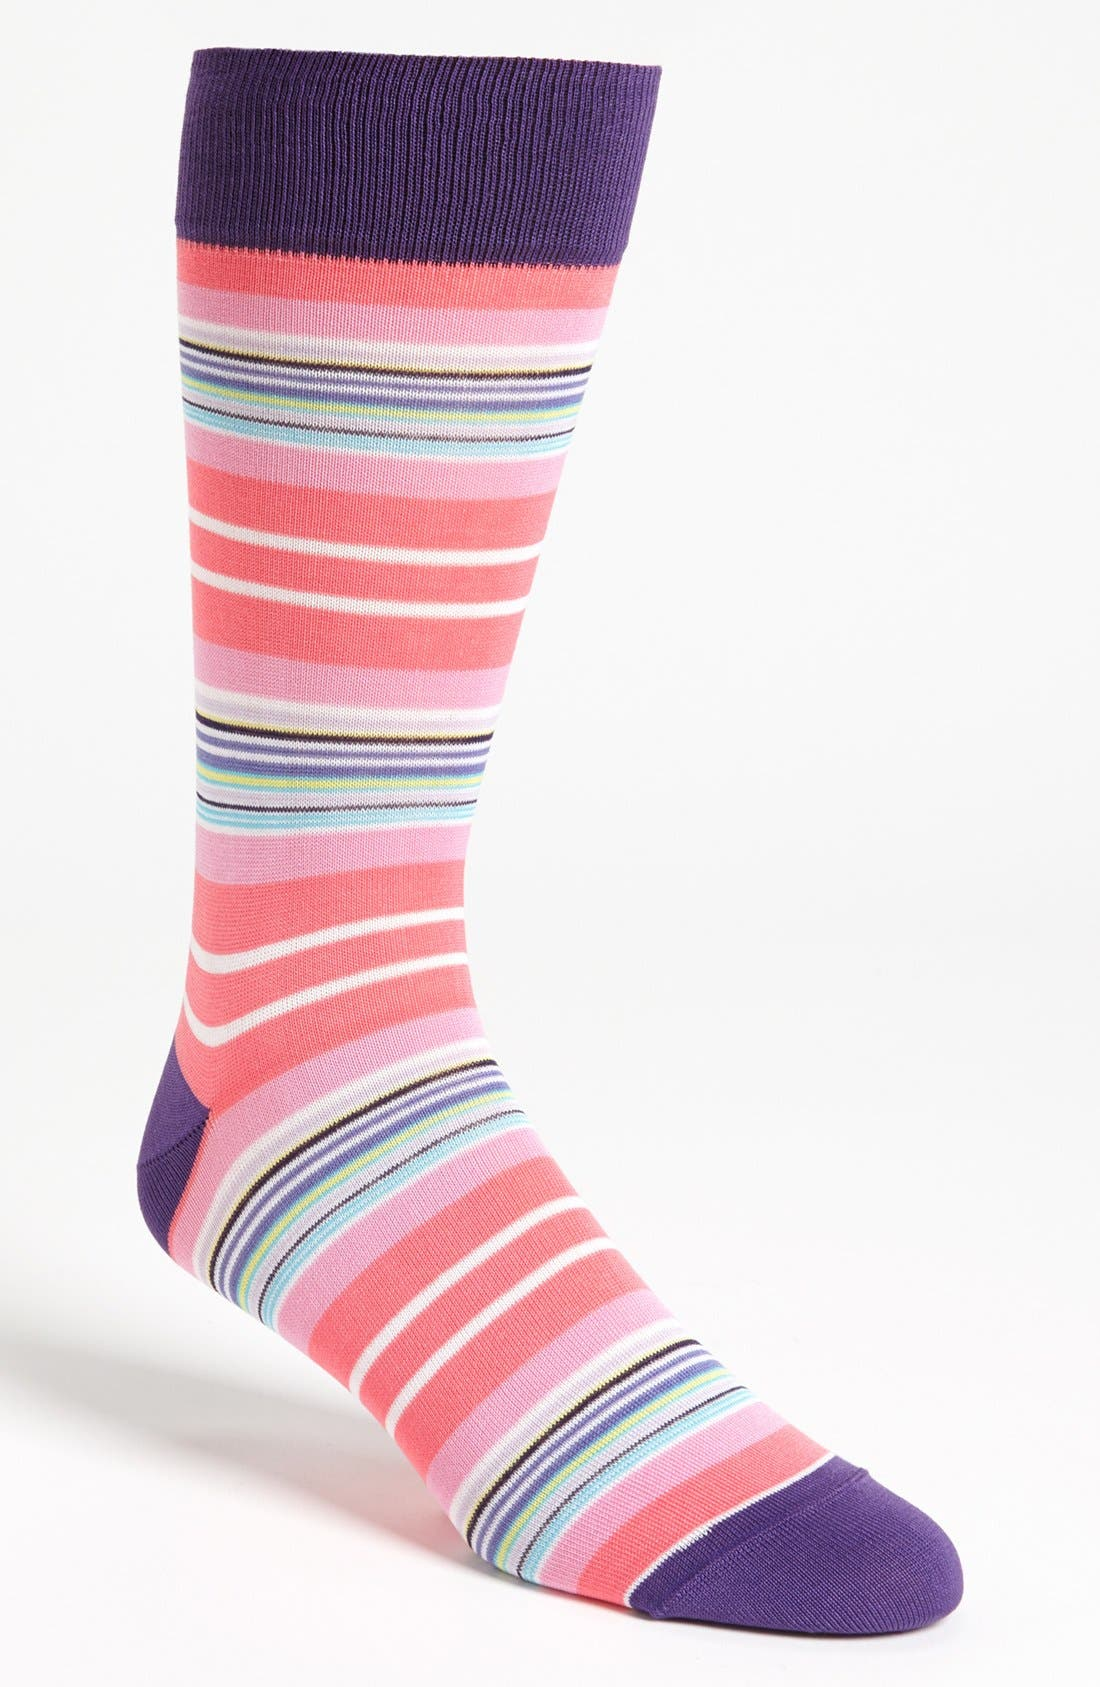 Alternate Image 1 Selected - BUGATCHI Multi Stripe Socks